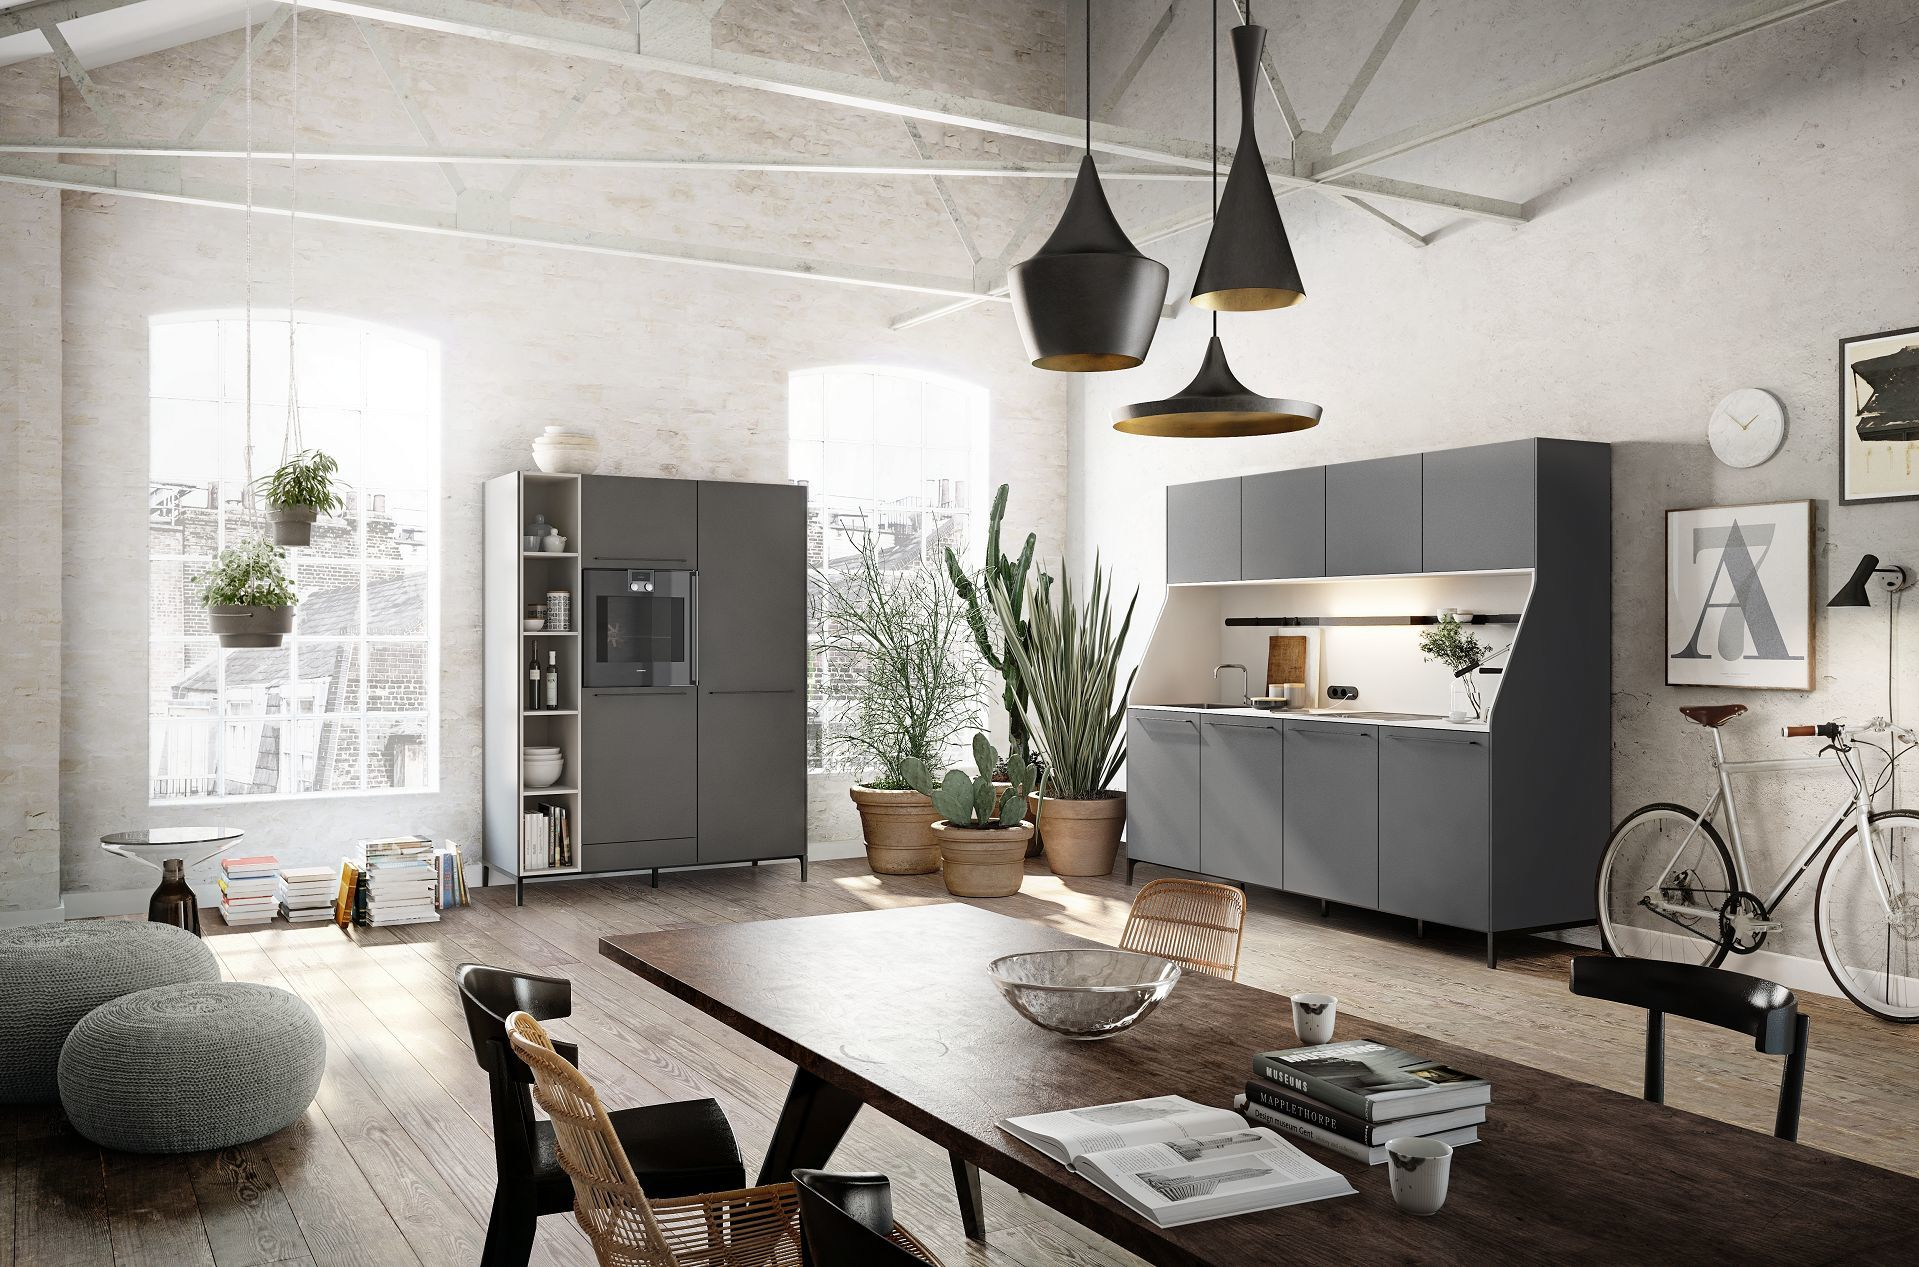 Kitchen Design for a Modern Mobile Generation